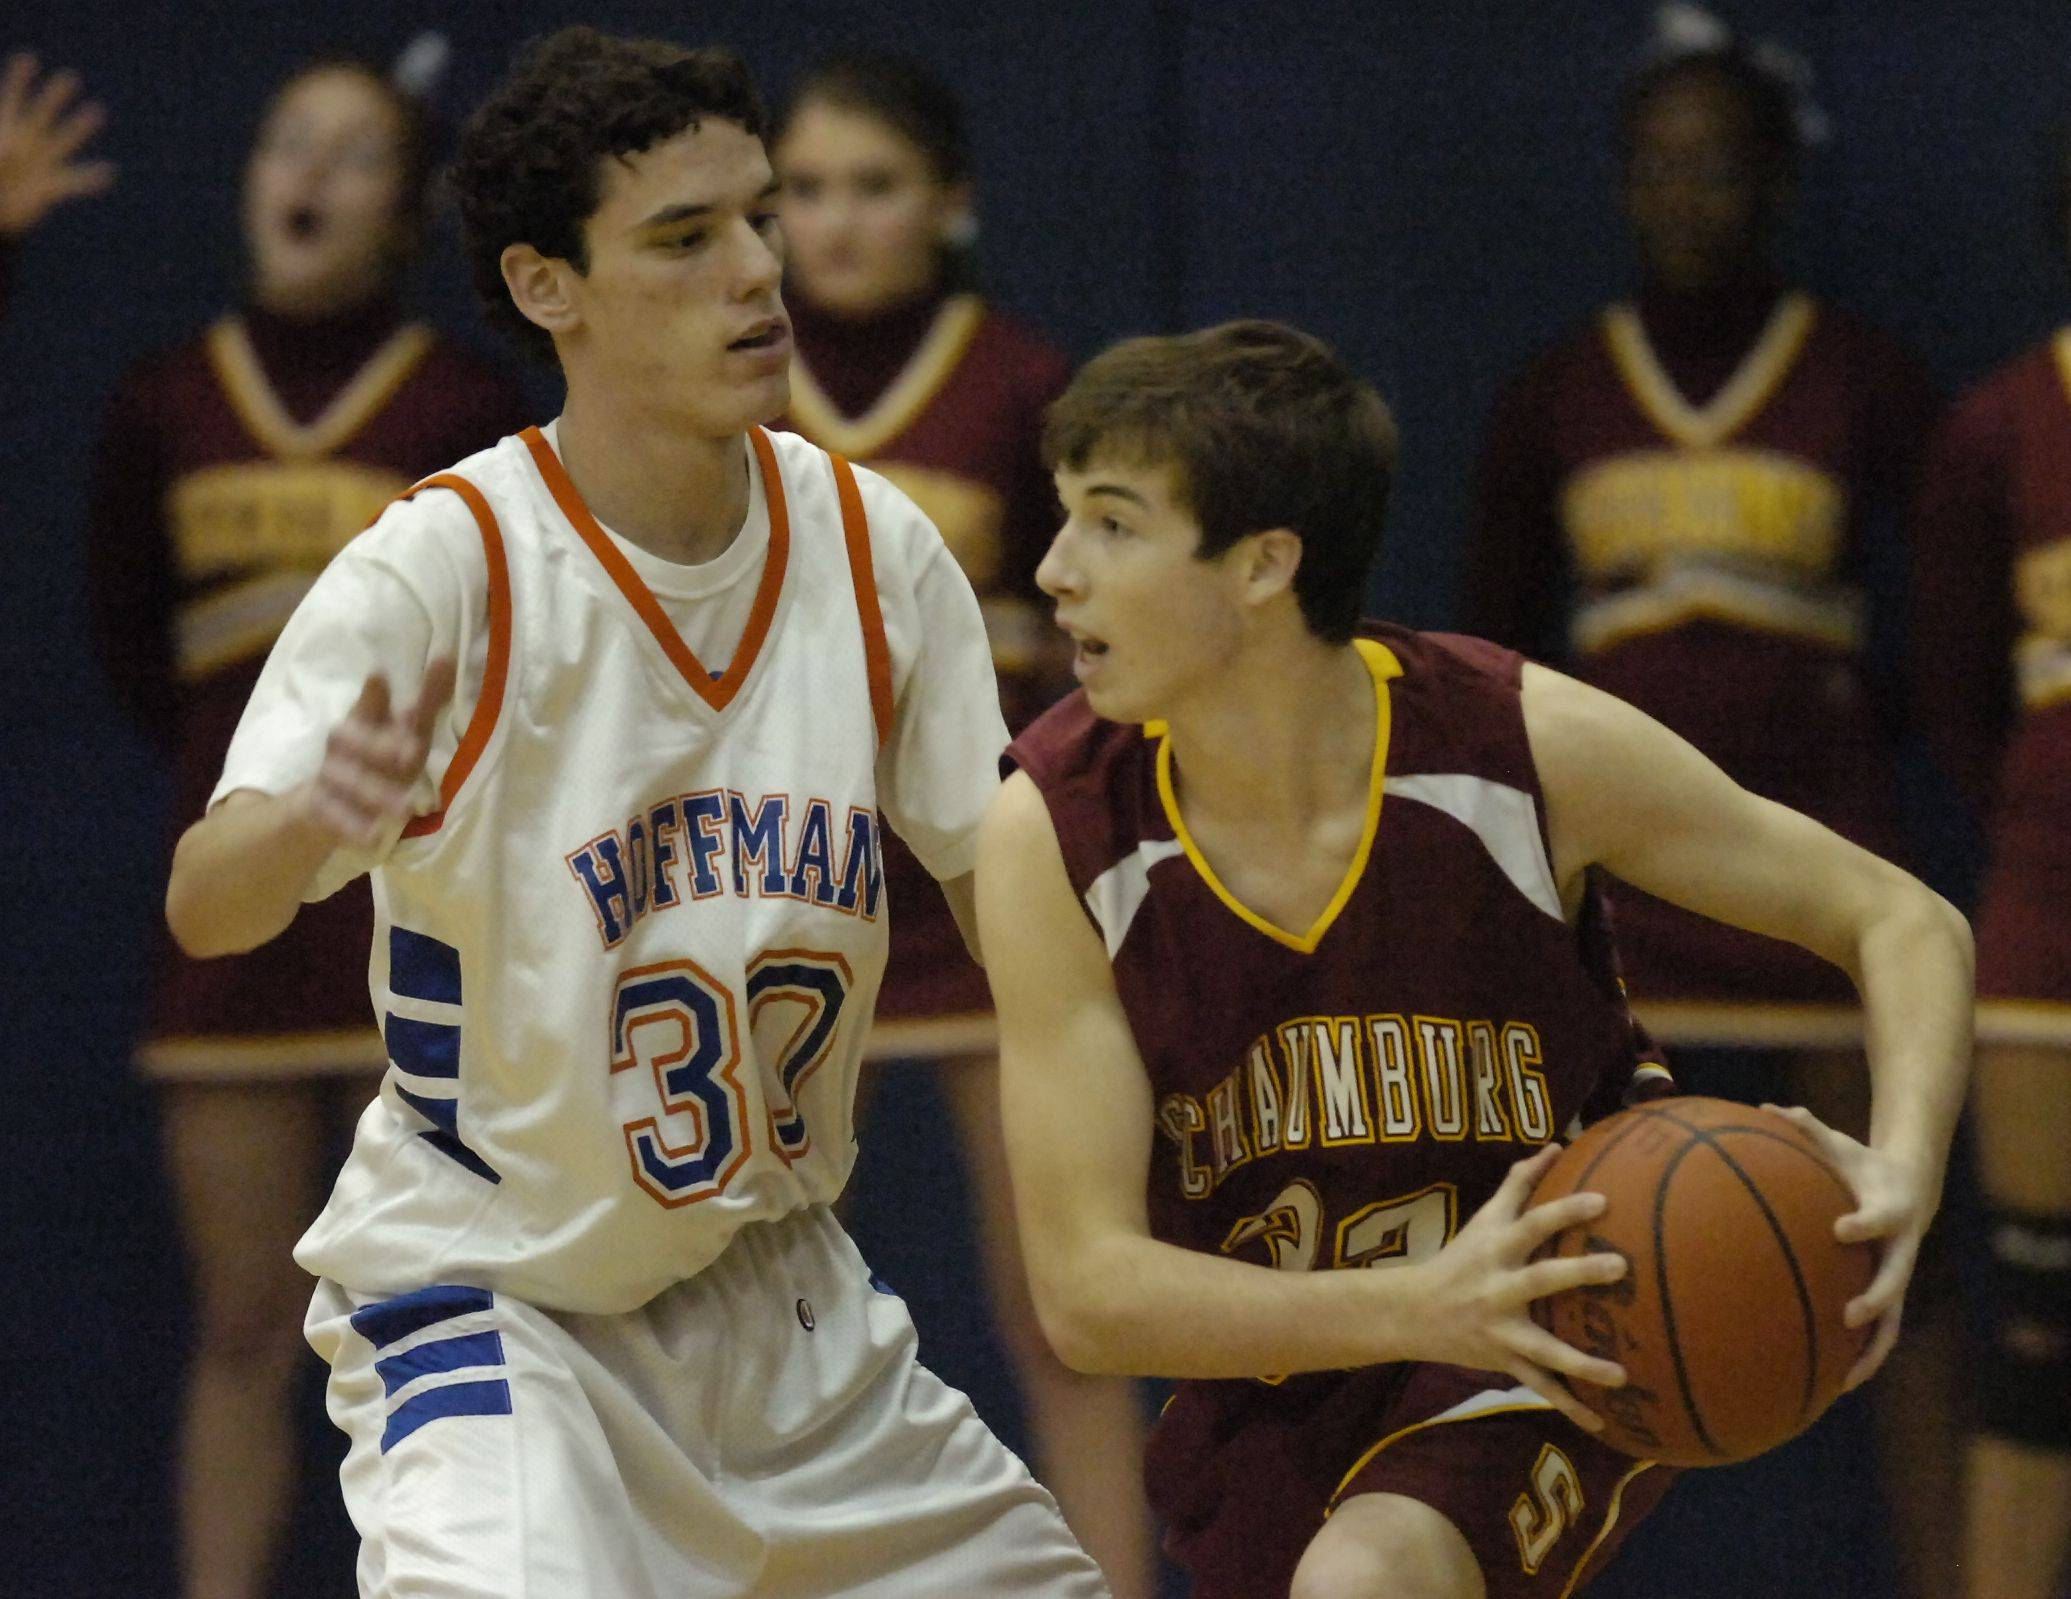 Images from the Hoffman Estates vs Schaumburg boys basketball game in Hoffman Estates on Friday, December 17th